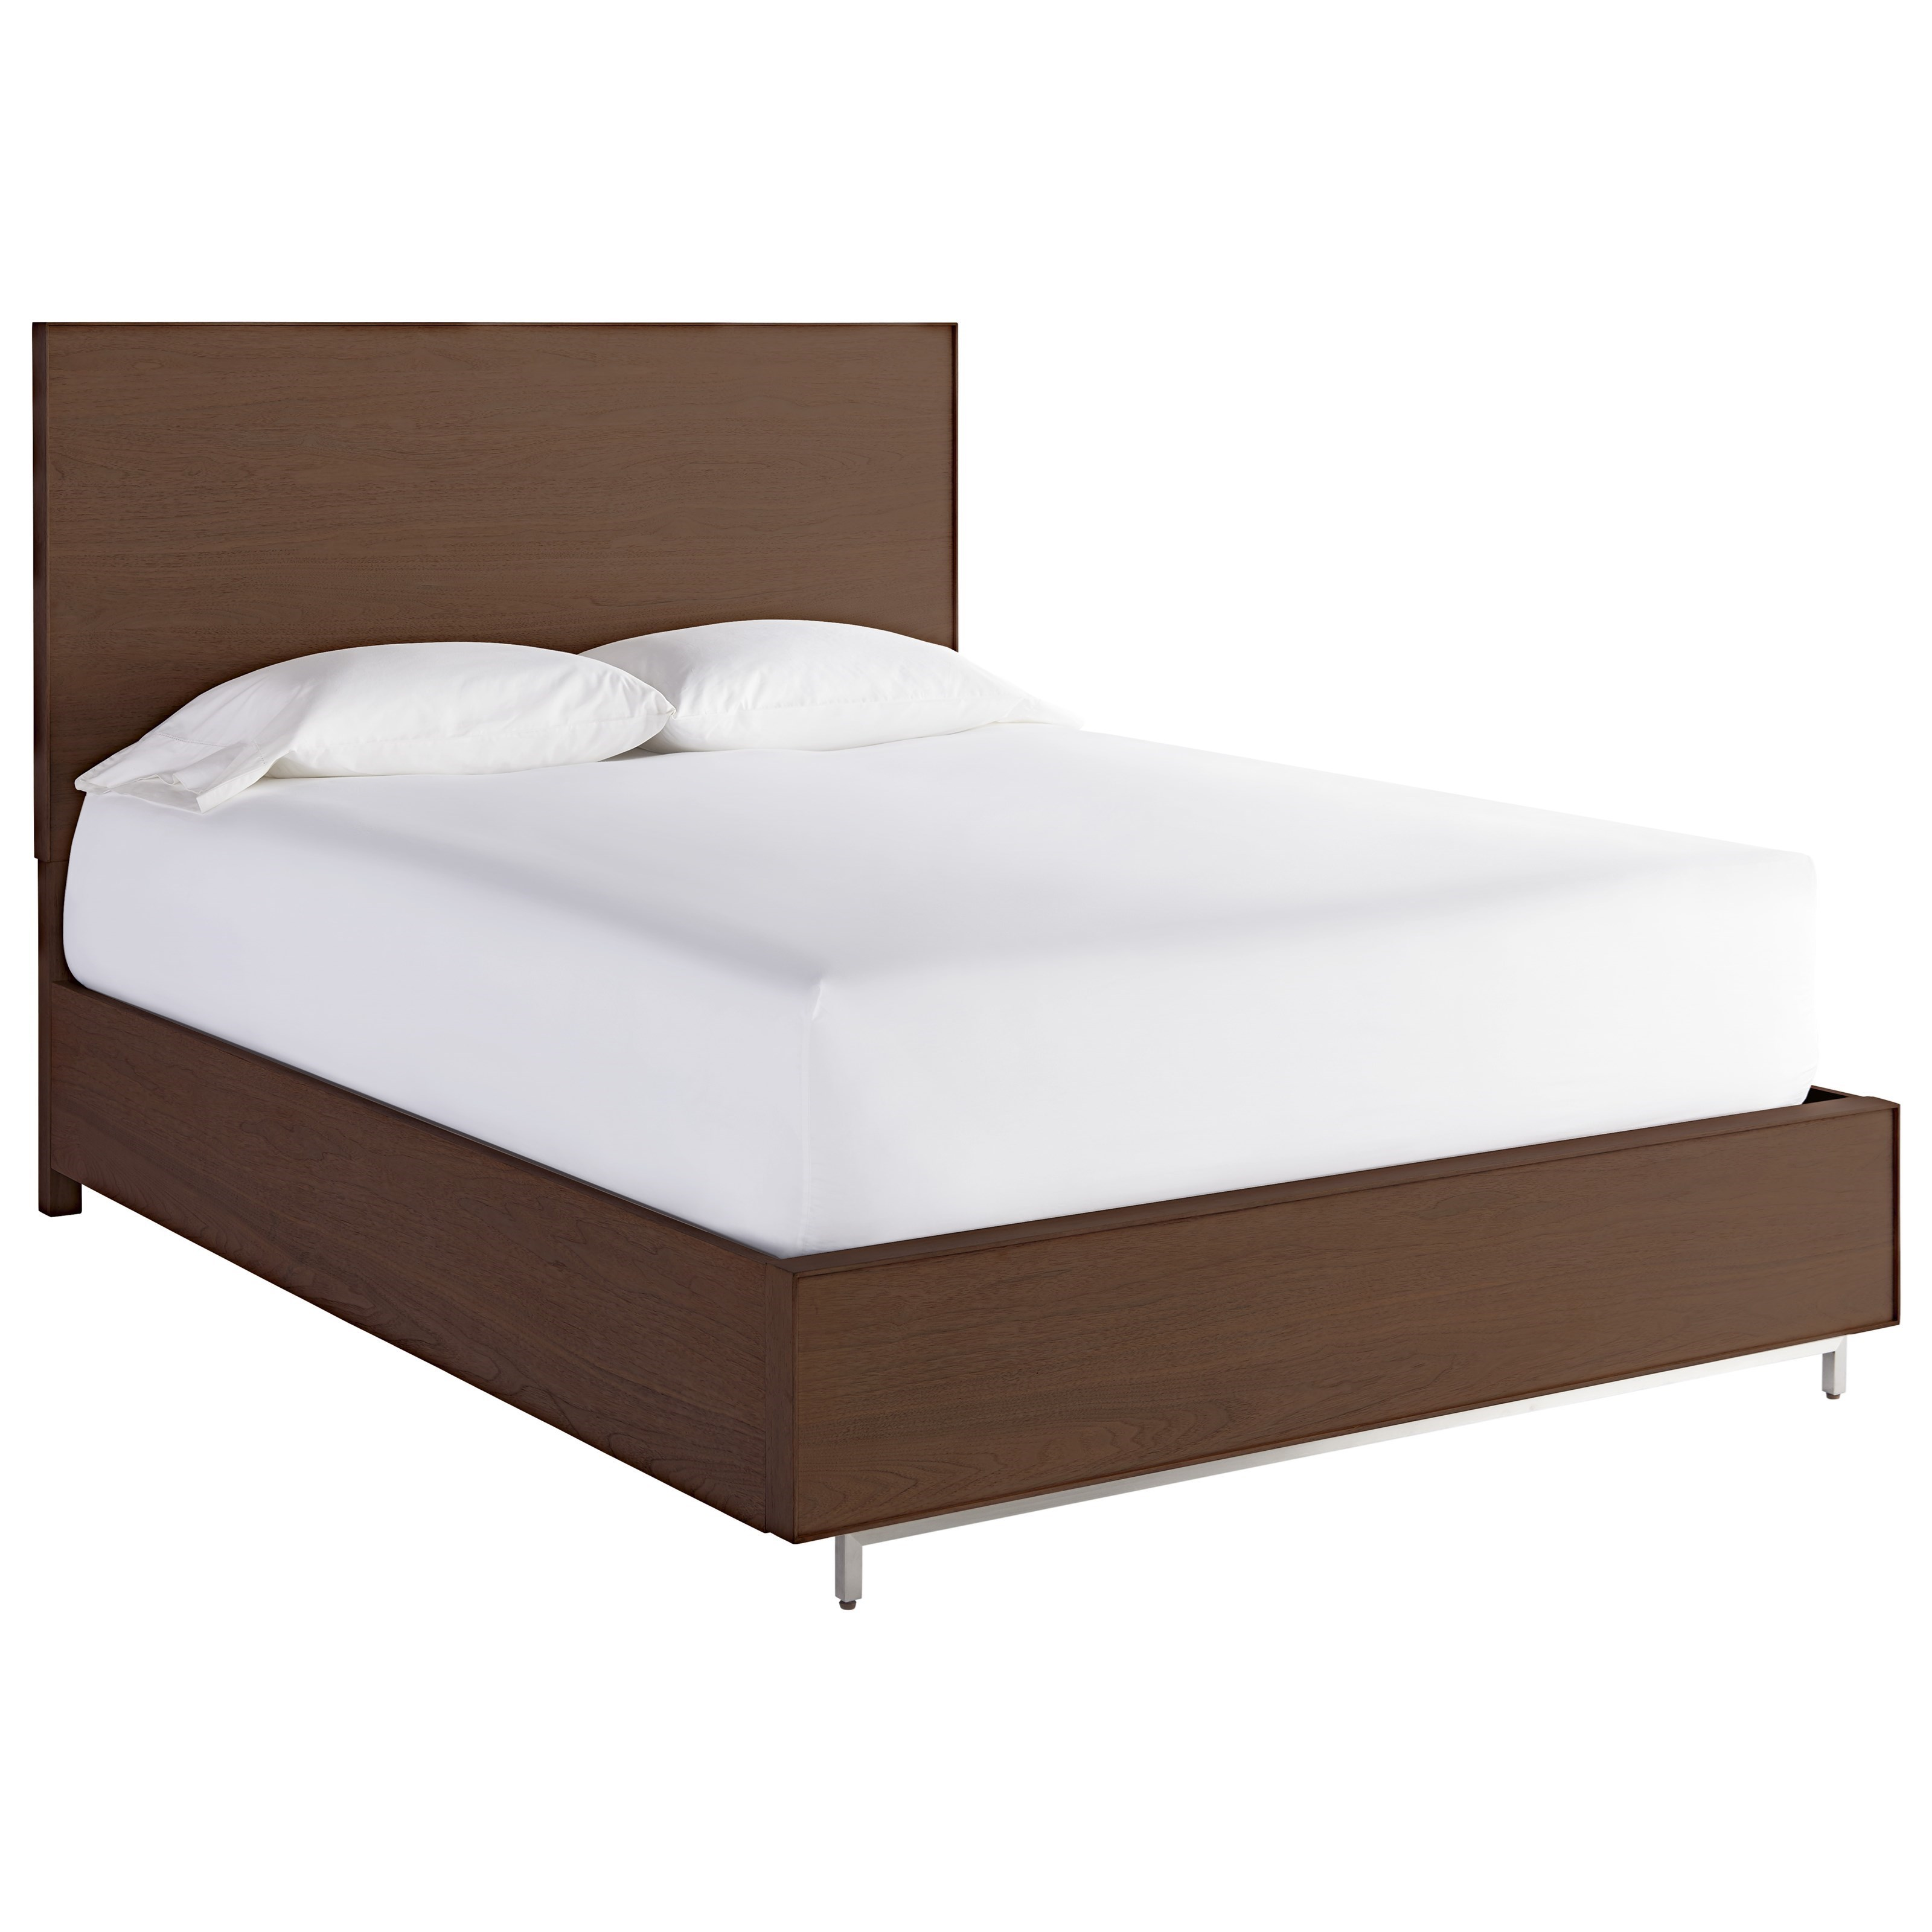 Spaces Walnut King Storage Bed by Universal at HomeWorld Furniture